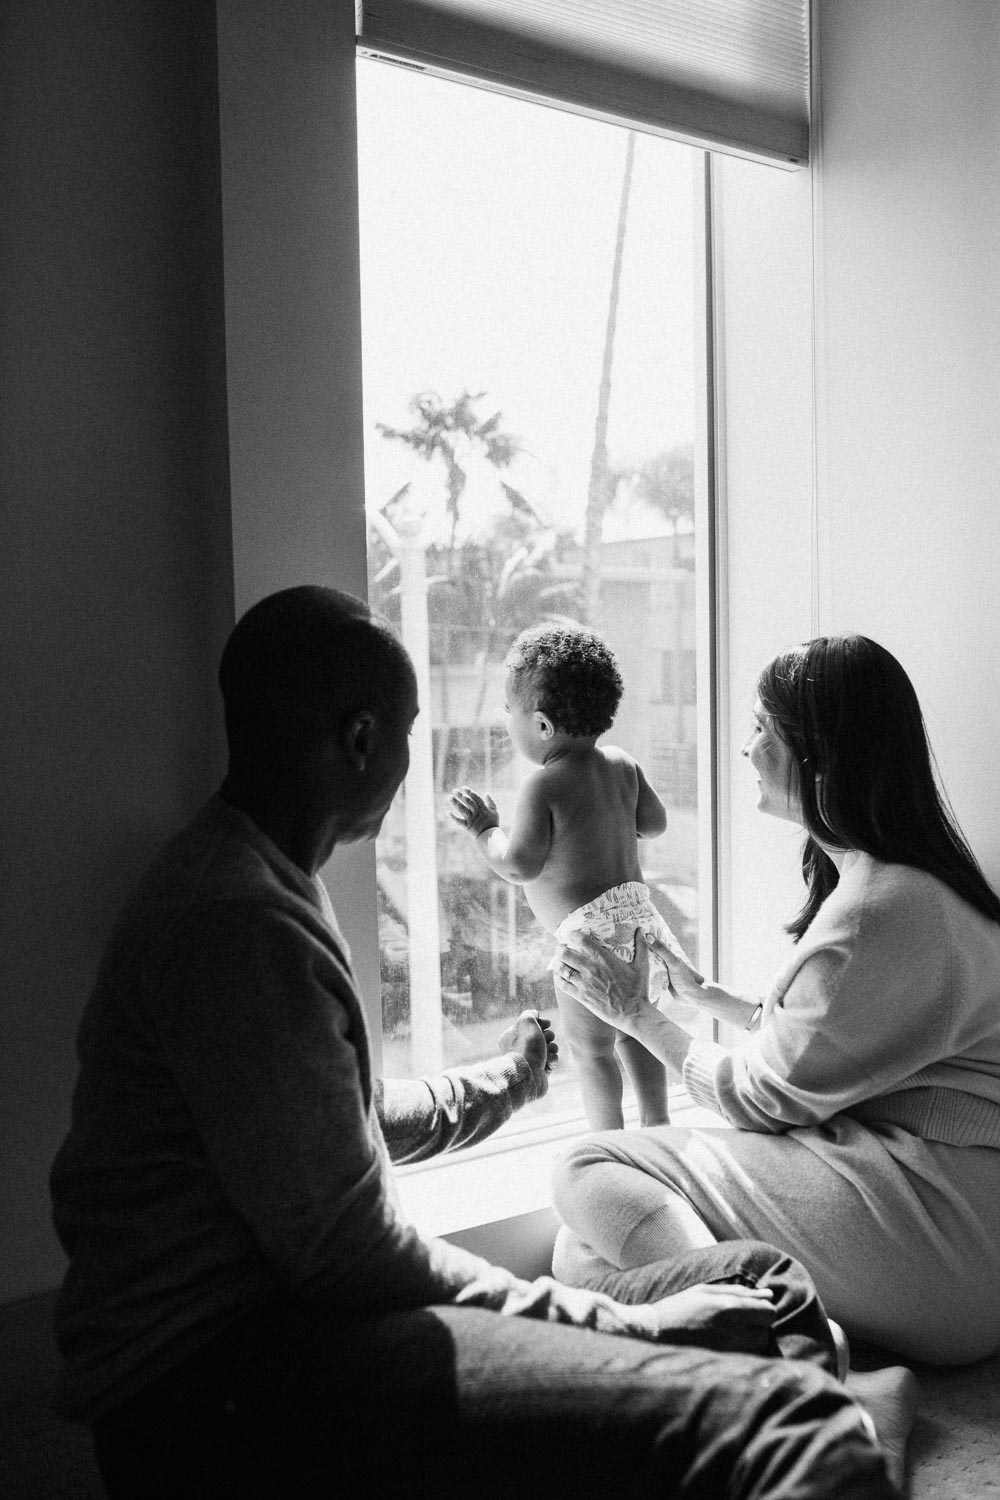 natural-and-artistic-black-and-white-photo-of-family-looking-out-window-in-los-angeles-california